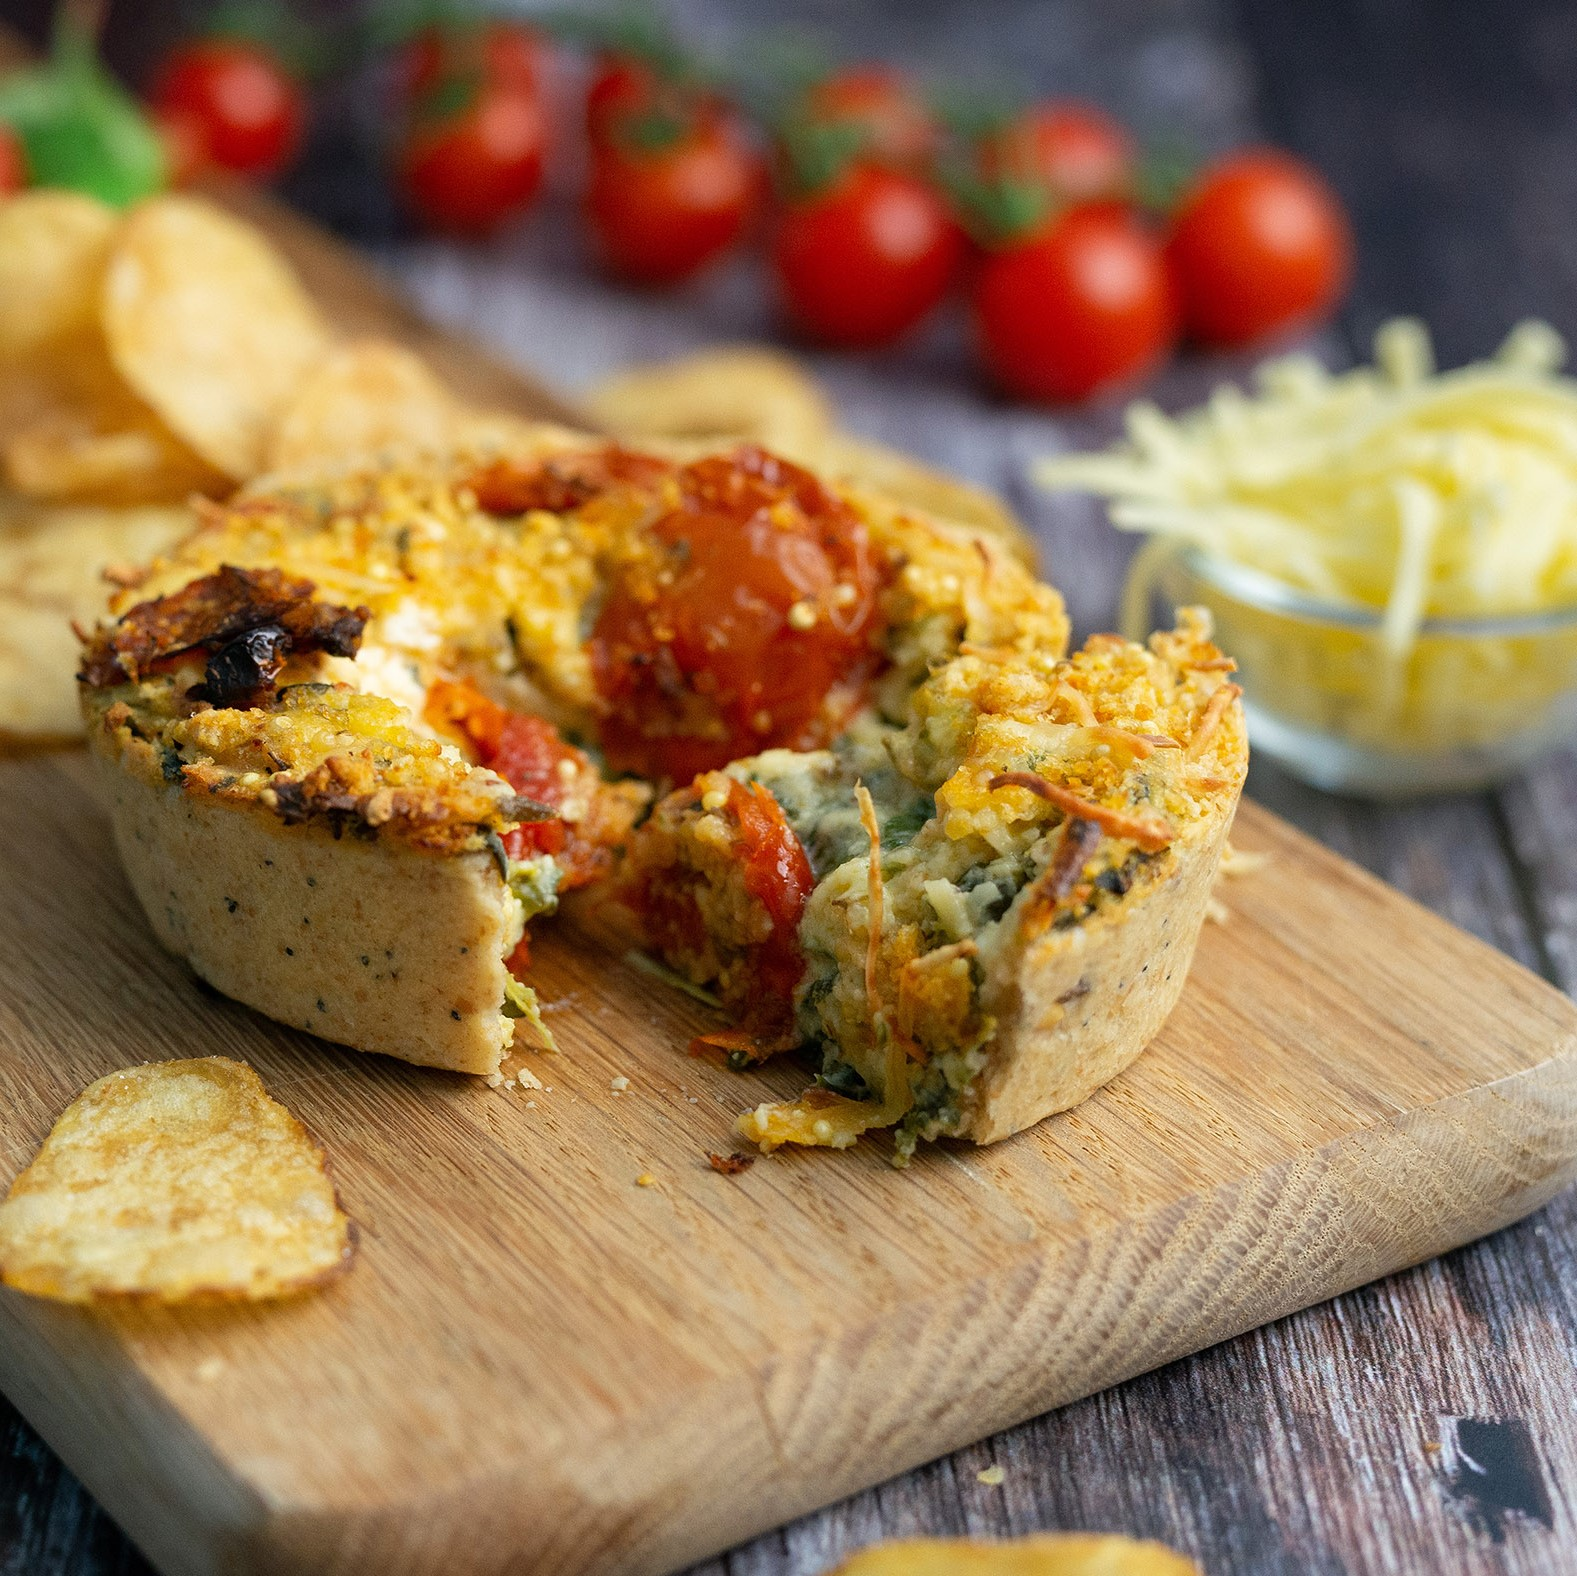 Spinneyfields Mature Cheddar, Tomato & Broccoli Quiche - Square Image